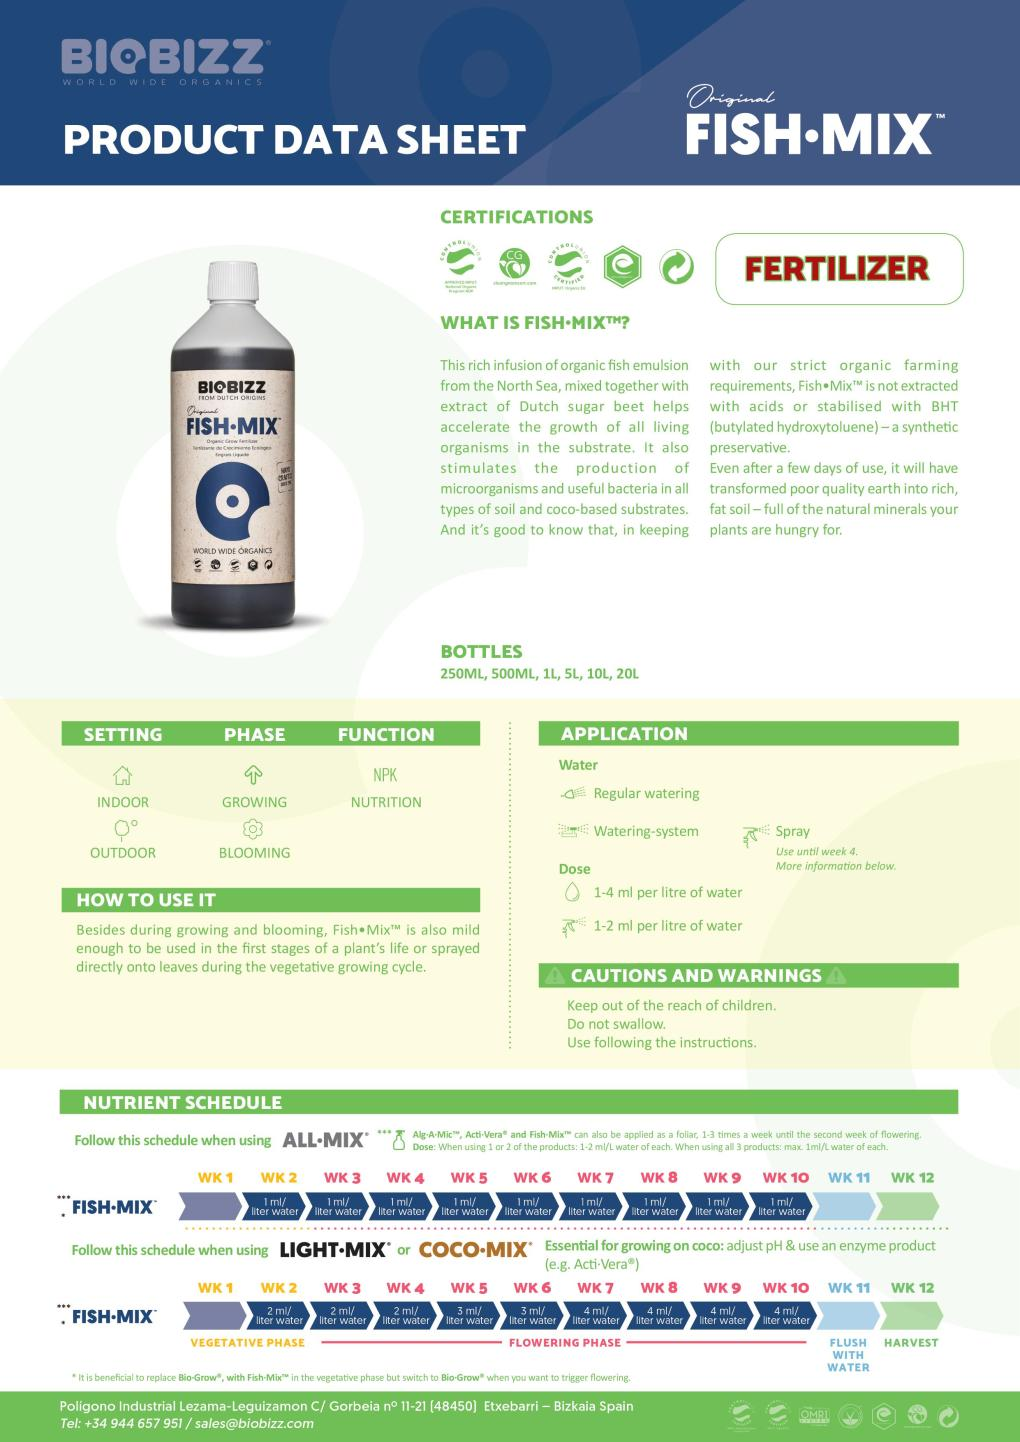 Biobizz Fish Mix - Product Data Sheet 2020